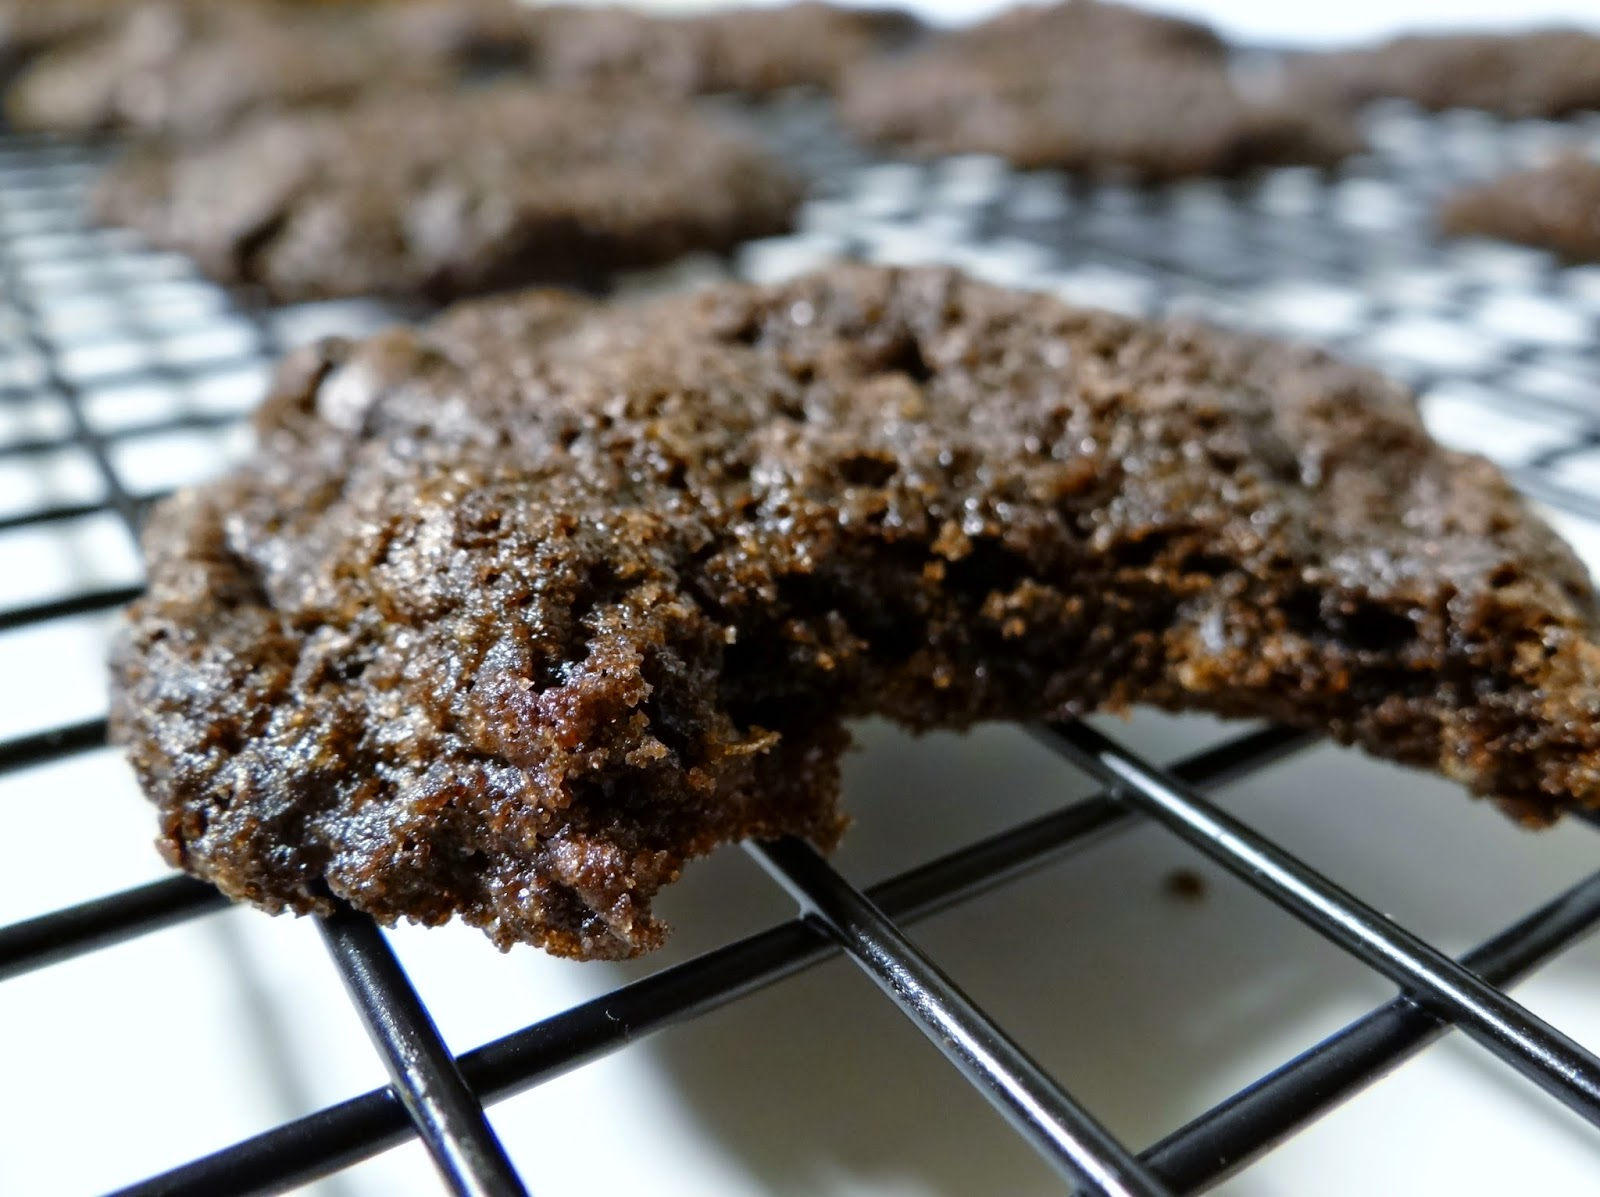 Up To Scratch? Immaculate Gluten Free Double Chocolate Cookie Mix #glutenfree #IBBakesWell #PlatefullCoop